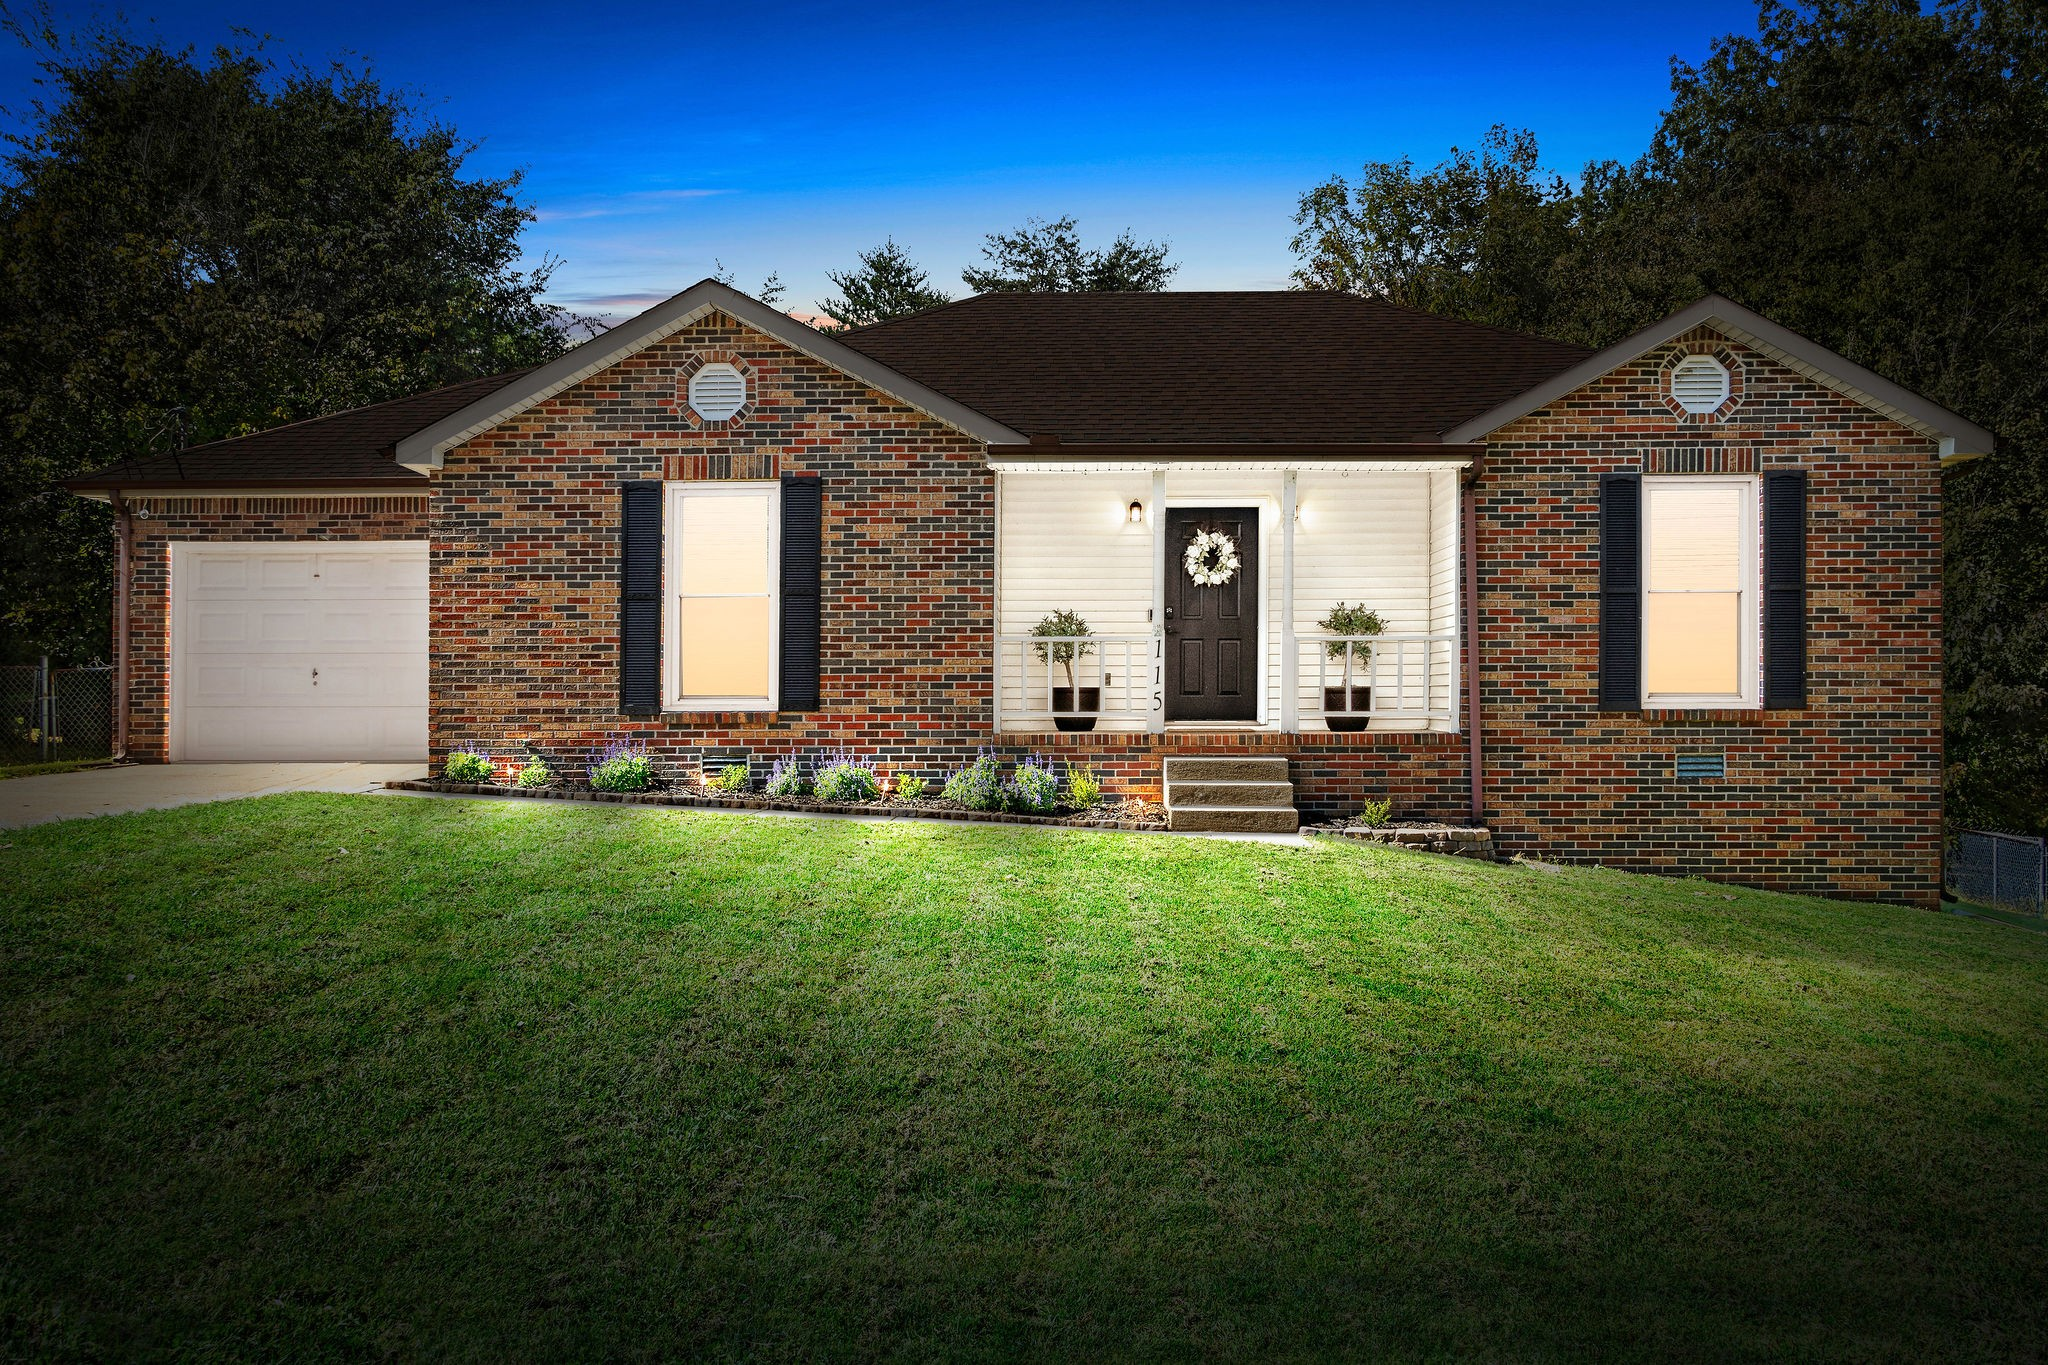 Welcome Home! 3 Bedrooms & 2 Bathrooms with Curb Appeal - Fully Fenced Yard on Tree Line - Vaulted Ceiling in Living Room - Fireplace with Shiplap - Master Suite with 2 Closets - No Carpet - Separate Laundry Room- Gorgeous Yard with Trees & Large Back Deck - Come See Today!